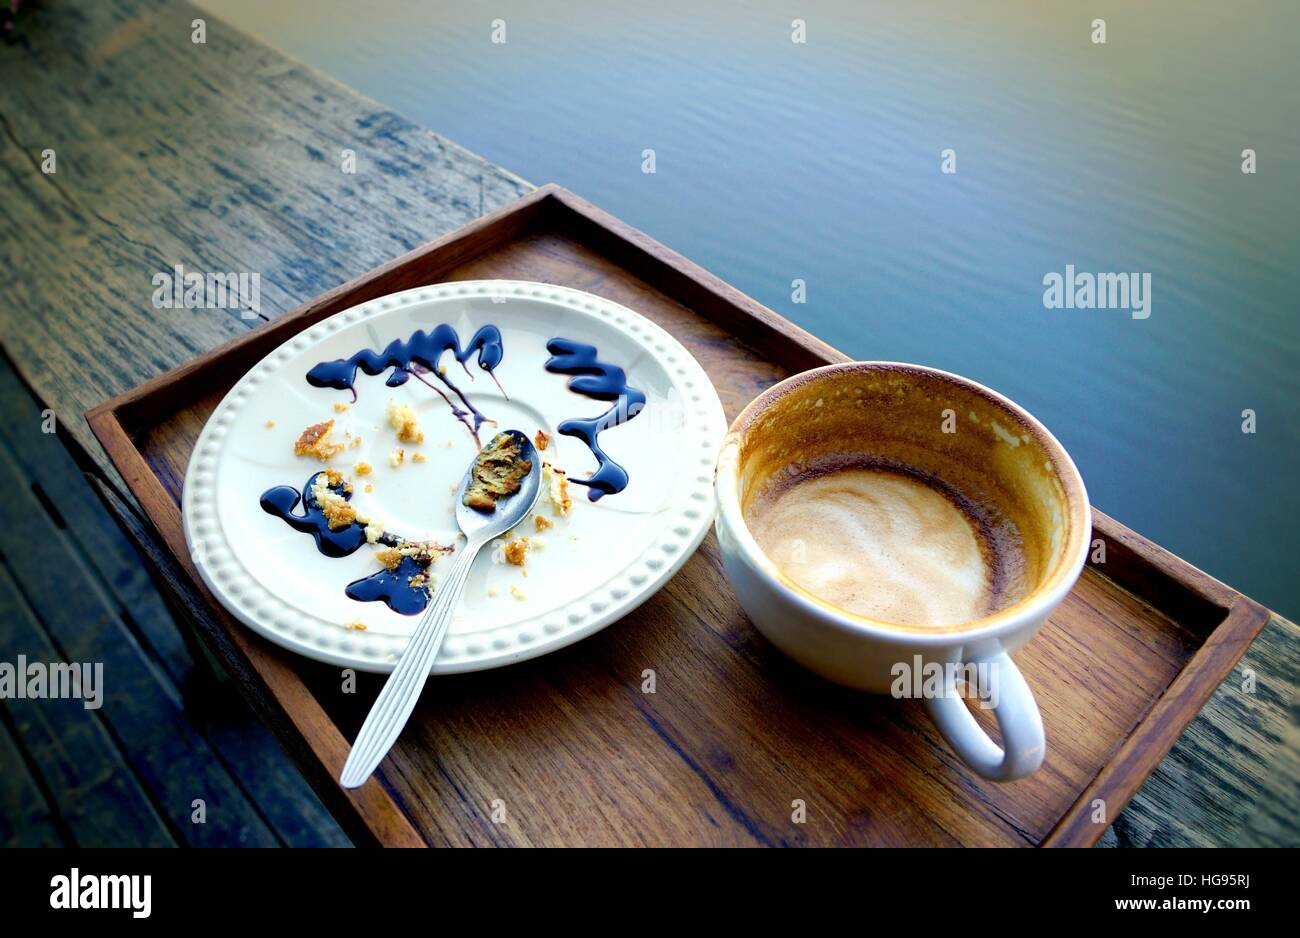 Empty coffee cup and white plate with crumbles of eaten cake and used spoon  dirty after finish breakfast. : cake and plate - pezcame.com